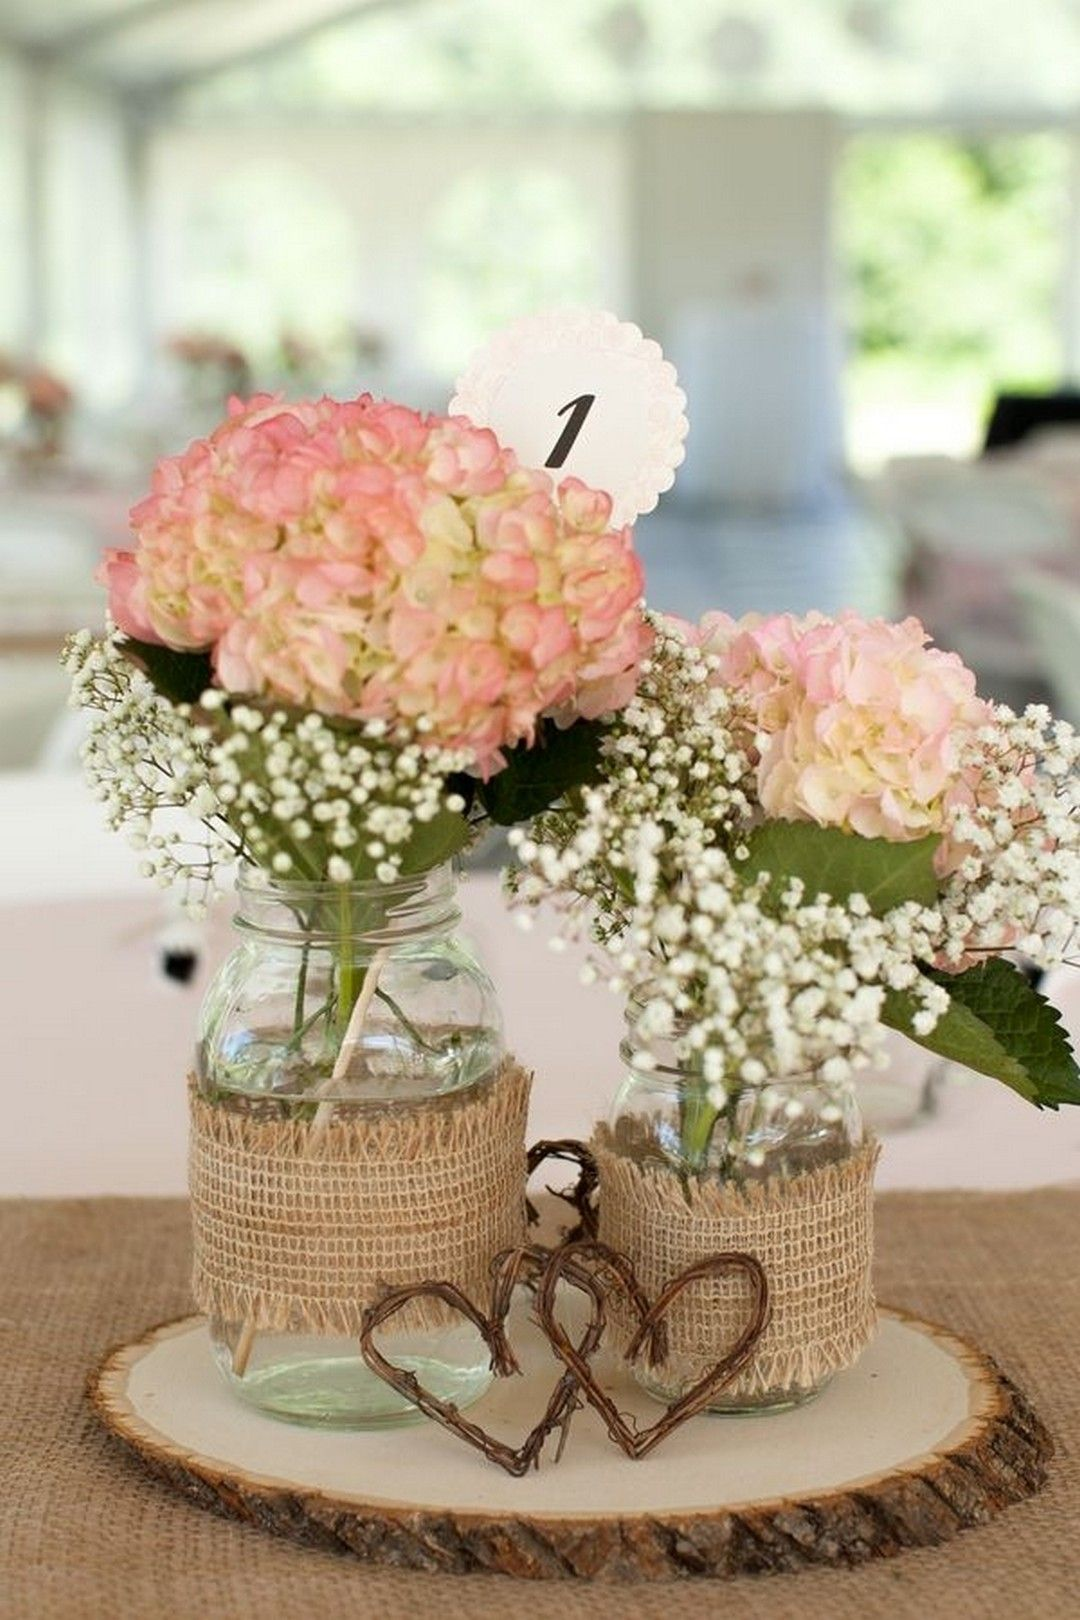 nice 99 Burlap Table Decorations Ideas for Rustic Wedding //.99architecture.com/2017/03/03/99-burlap-table-decorations-ideas -rustic-wedding/ & nice 99 Burlap Table Decorations Ideas for Rustic Wedding http://www ...